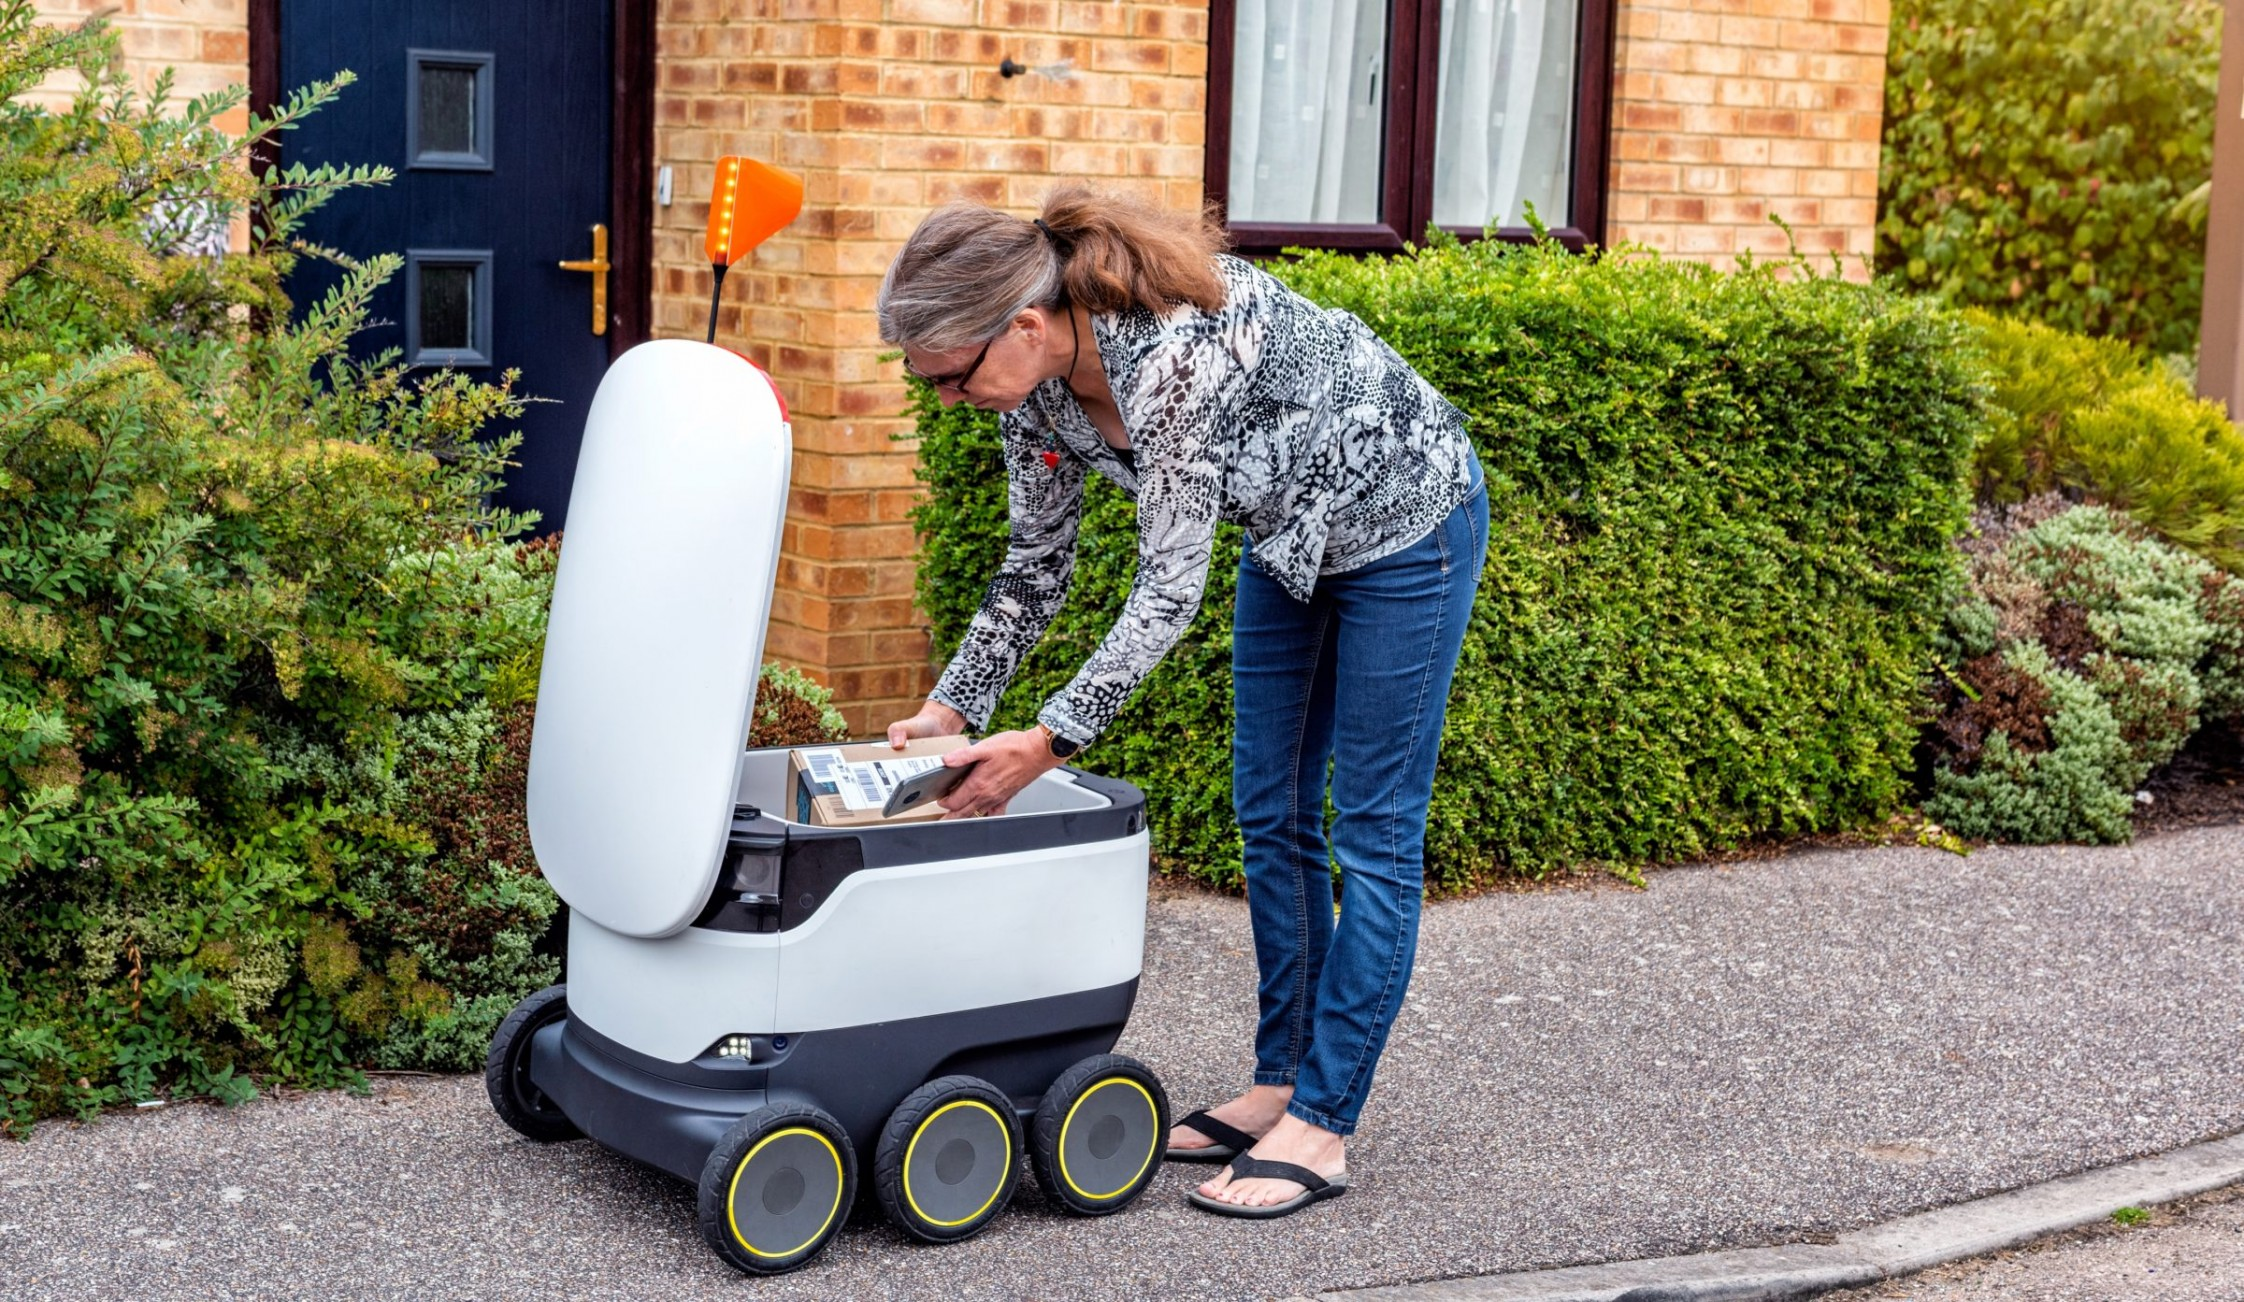 The world's first robot delivery service is launching in the UK